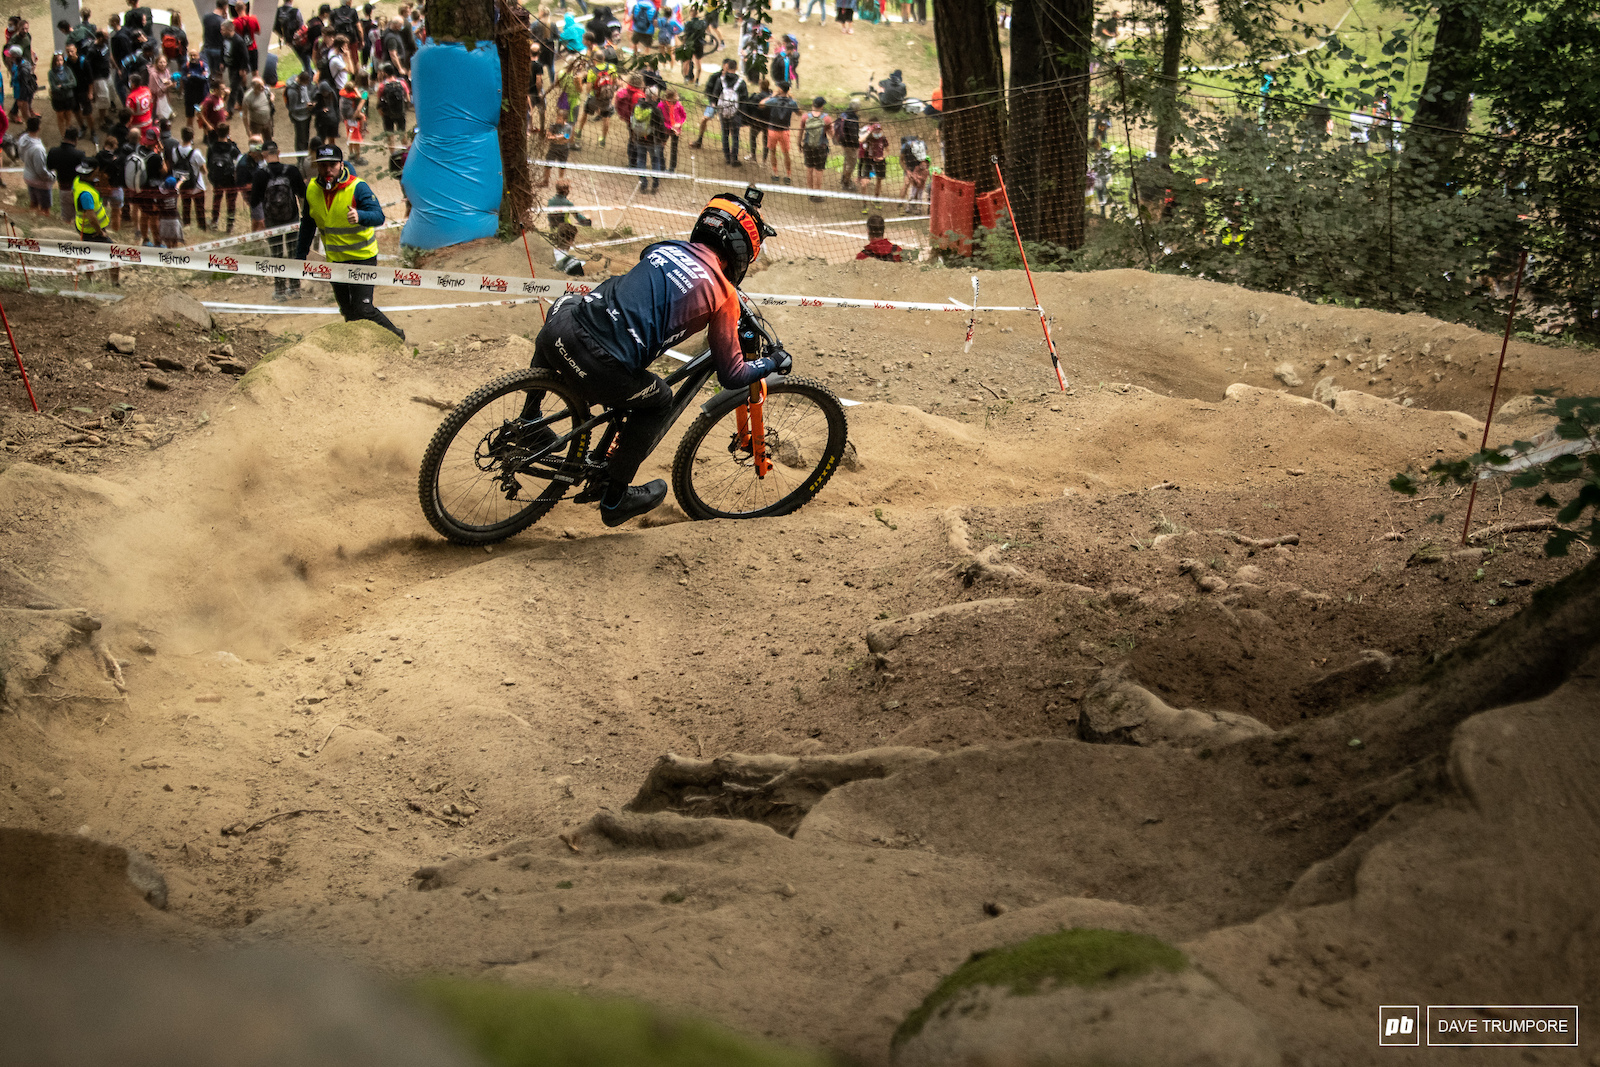 The overnight rain did very little to help the blown out track as riders struggled for grip in the loose dirt